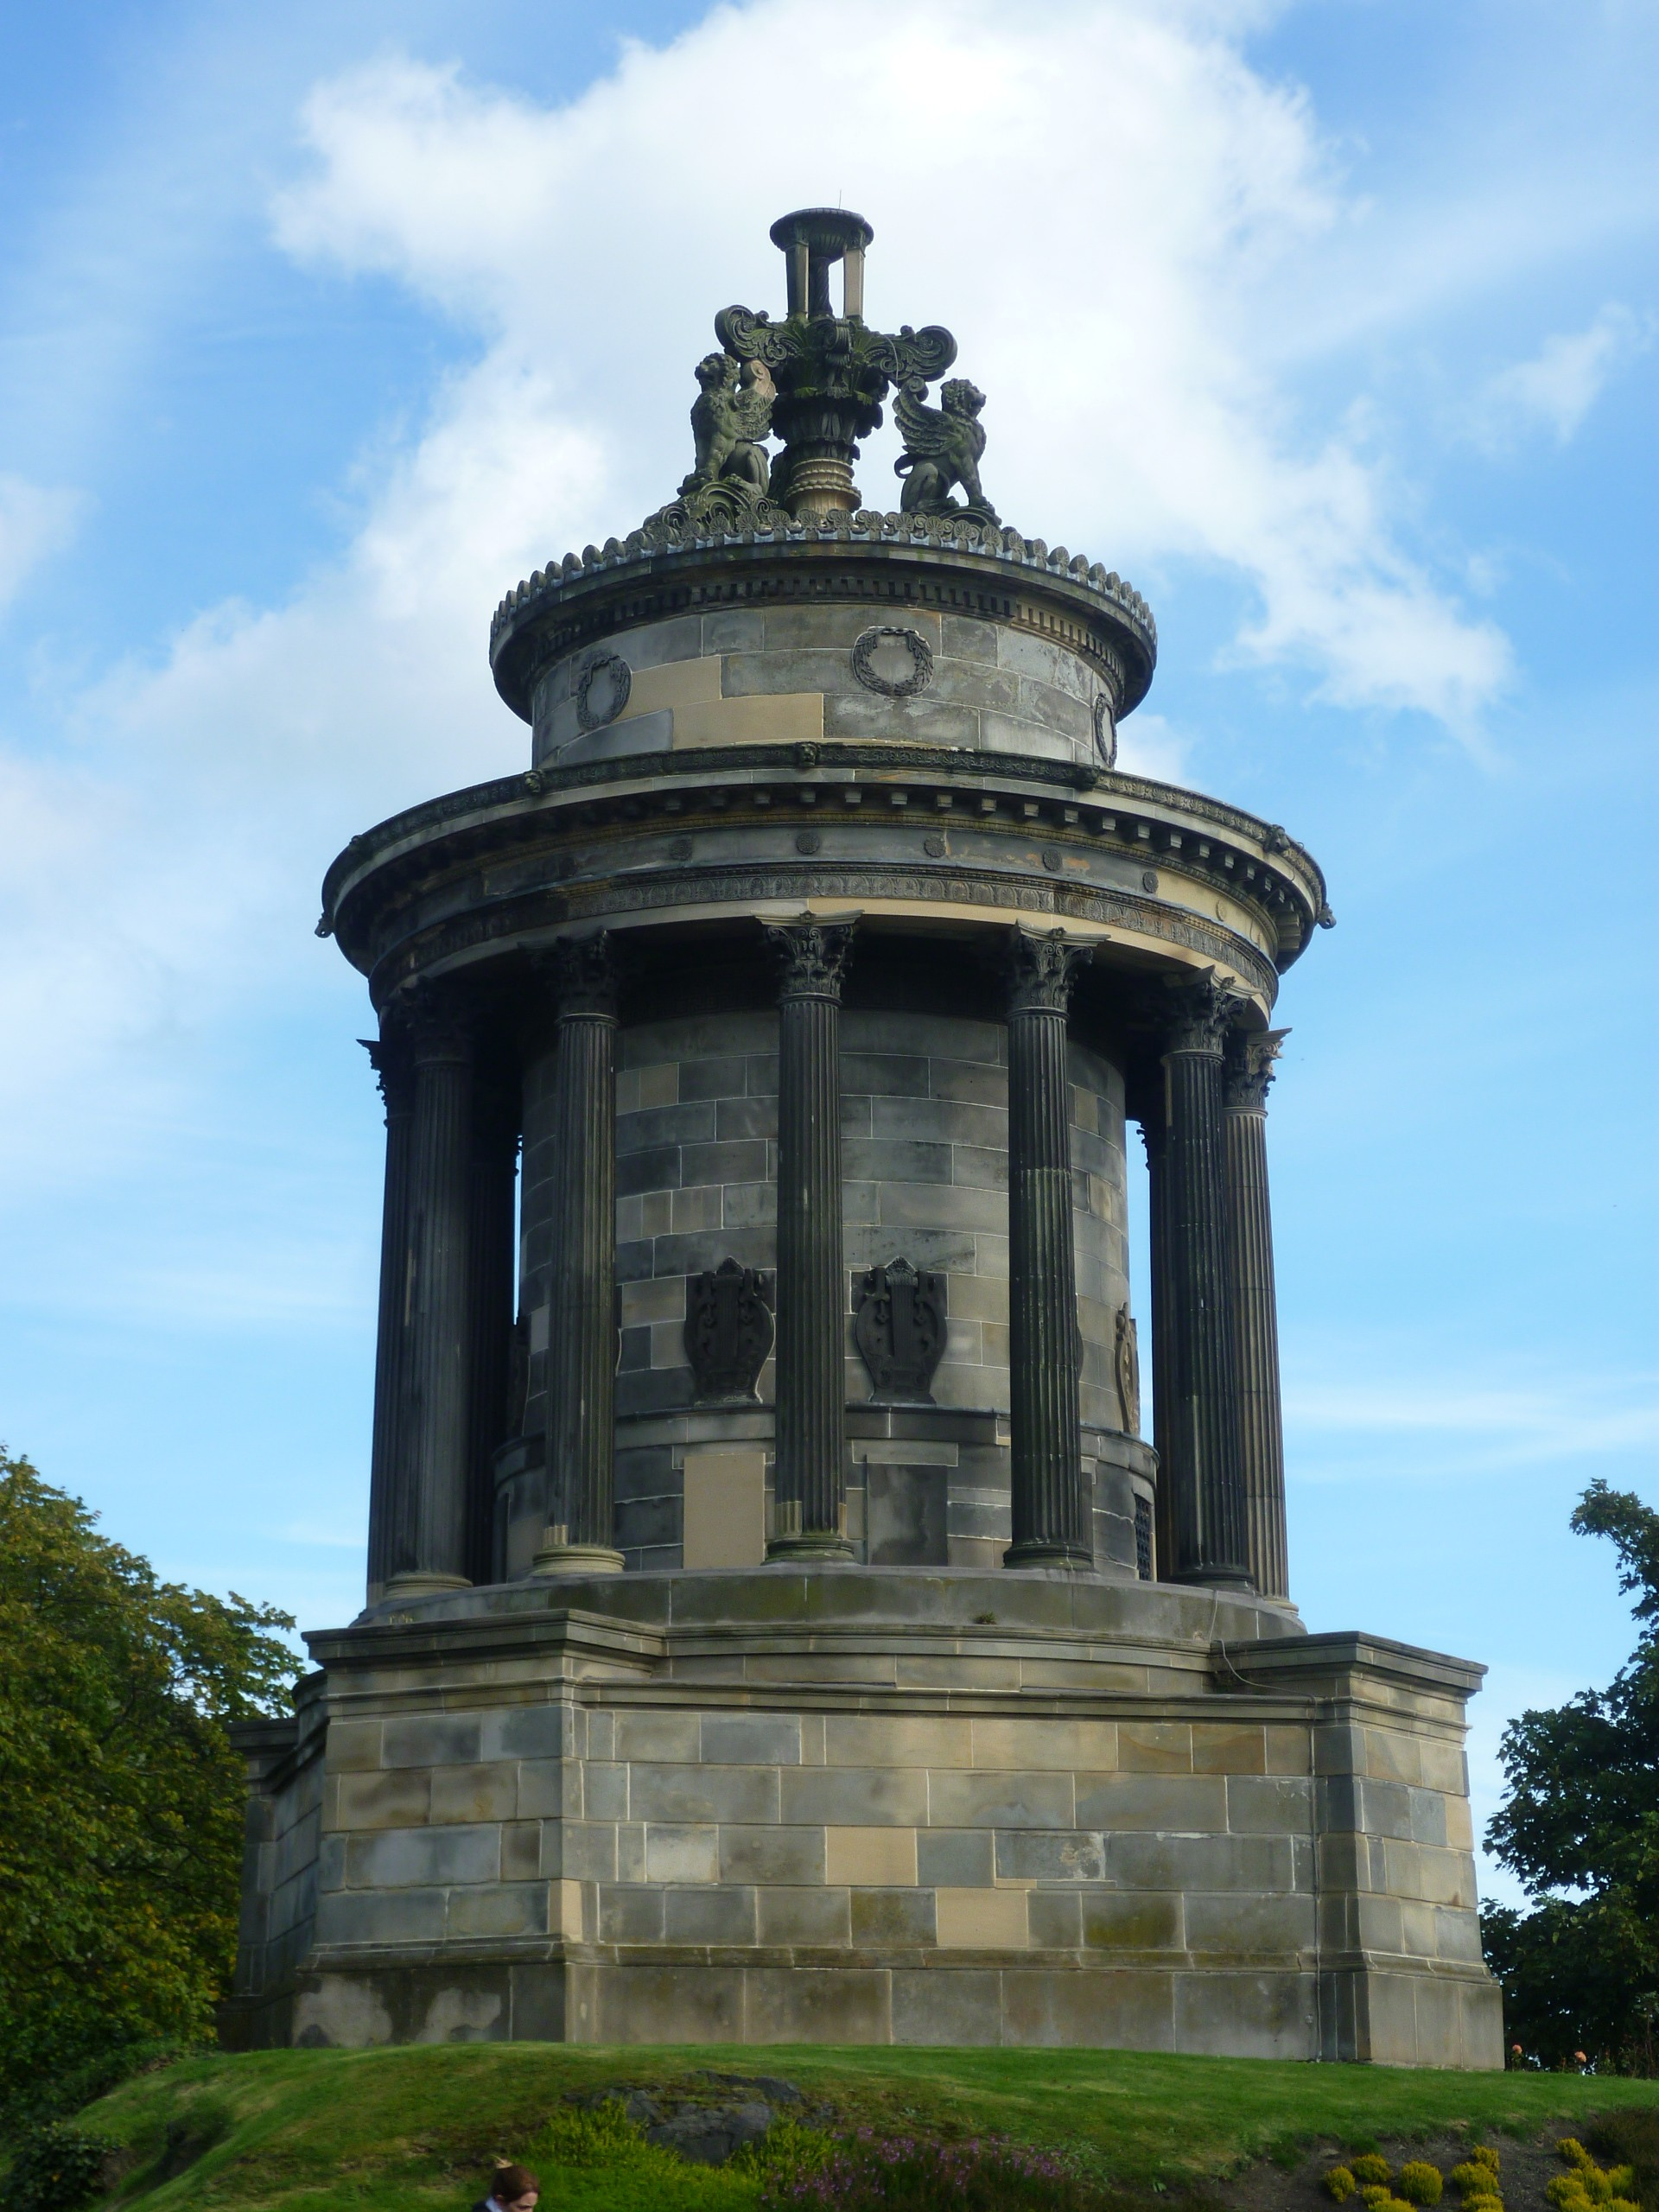 List of Robert Burns memorials - Wikipedia, the free encyclopedia